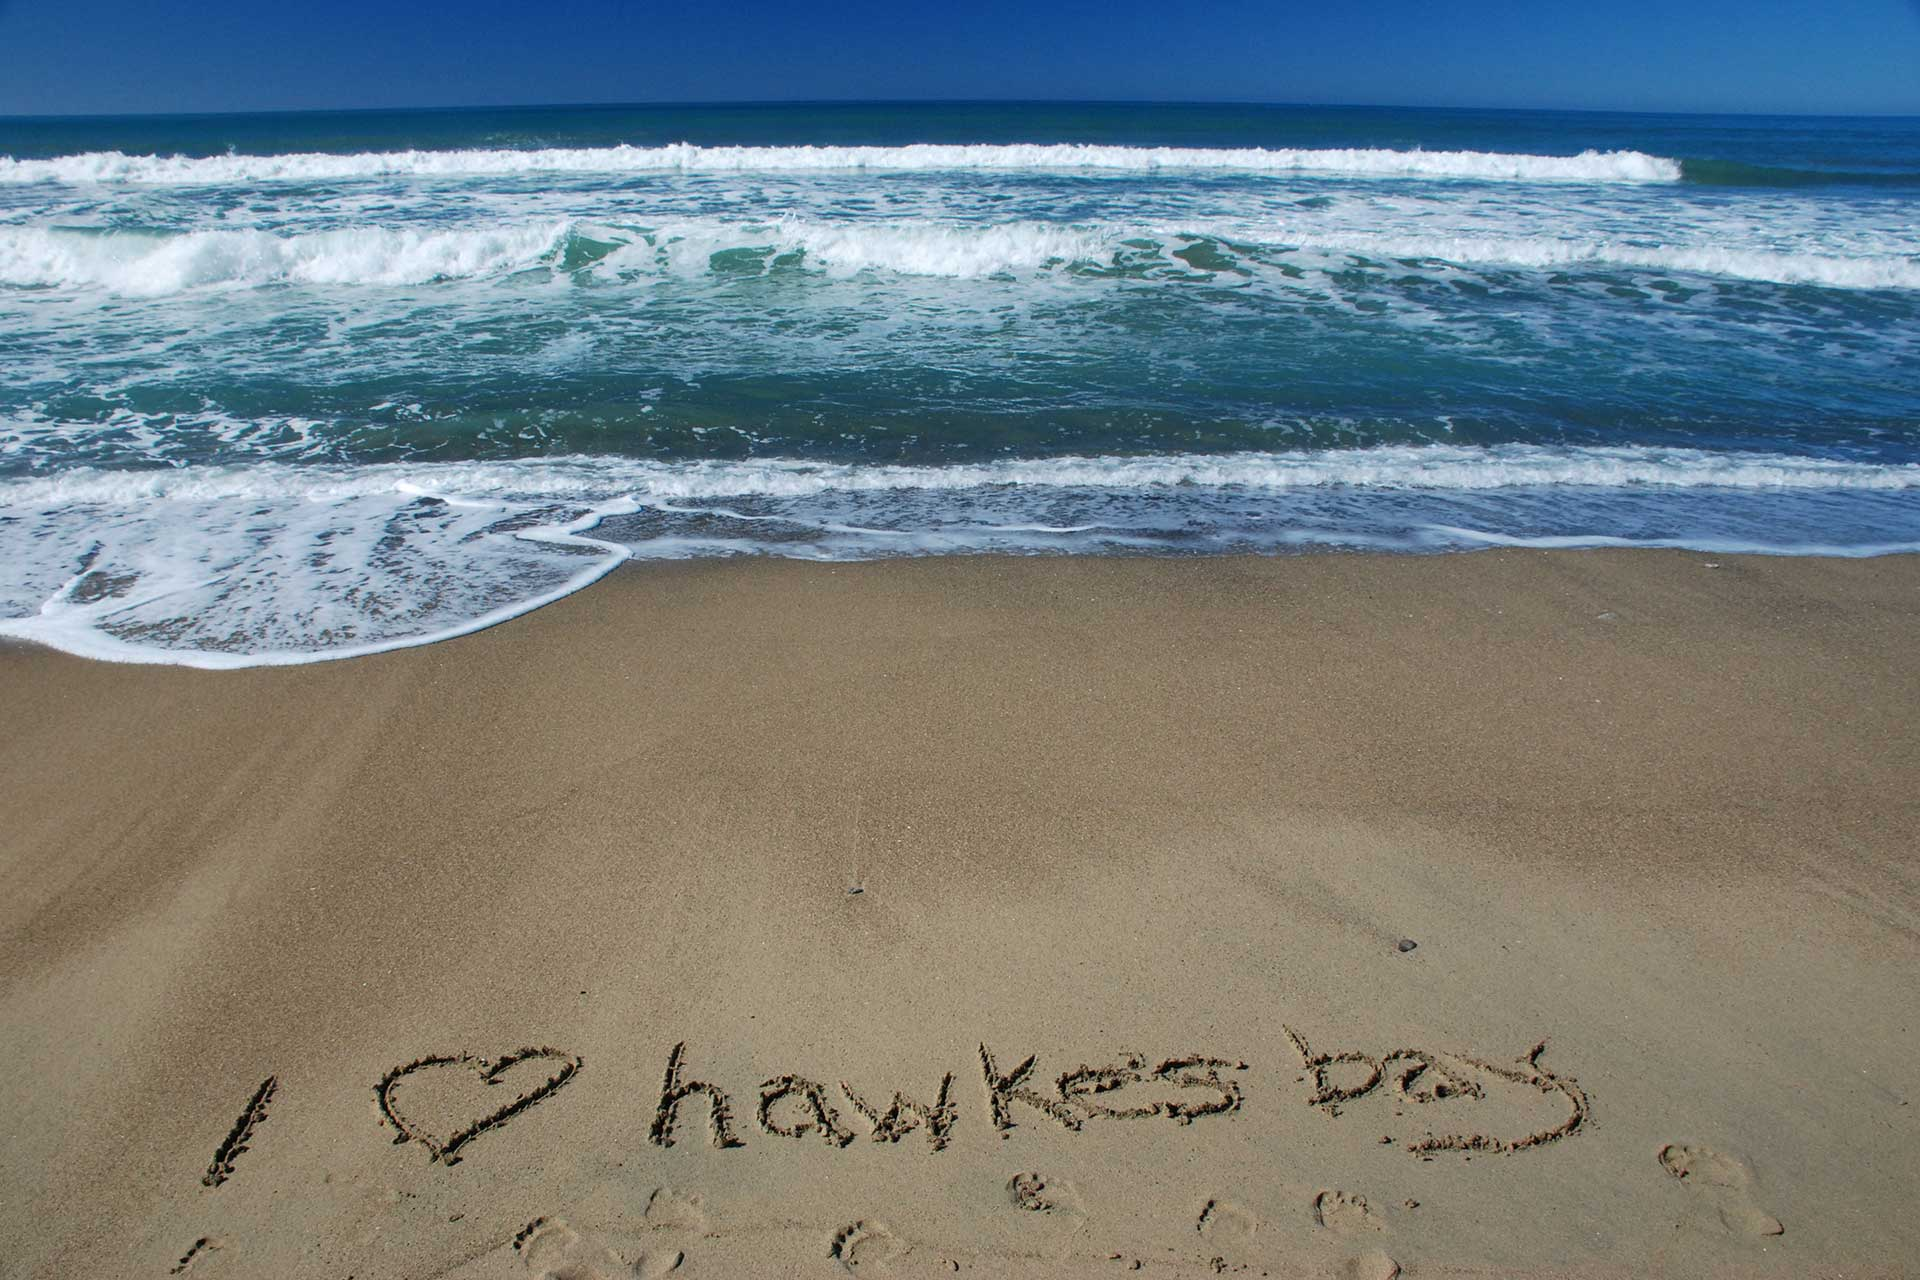 """Photo of """"I love Hawkes Bay beaches"""" drawn in the sand 